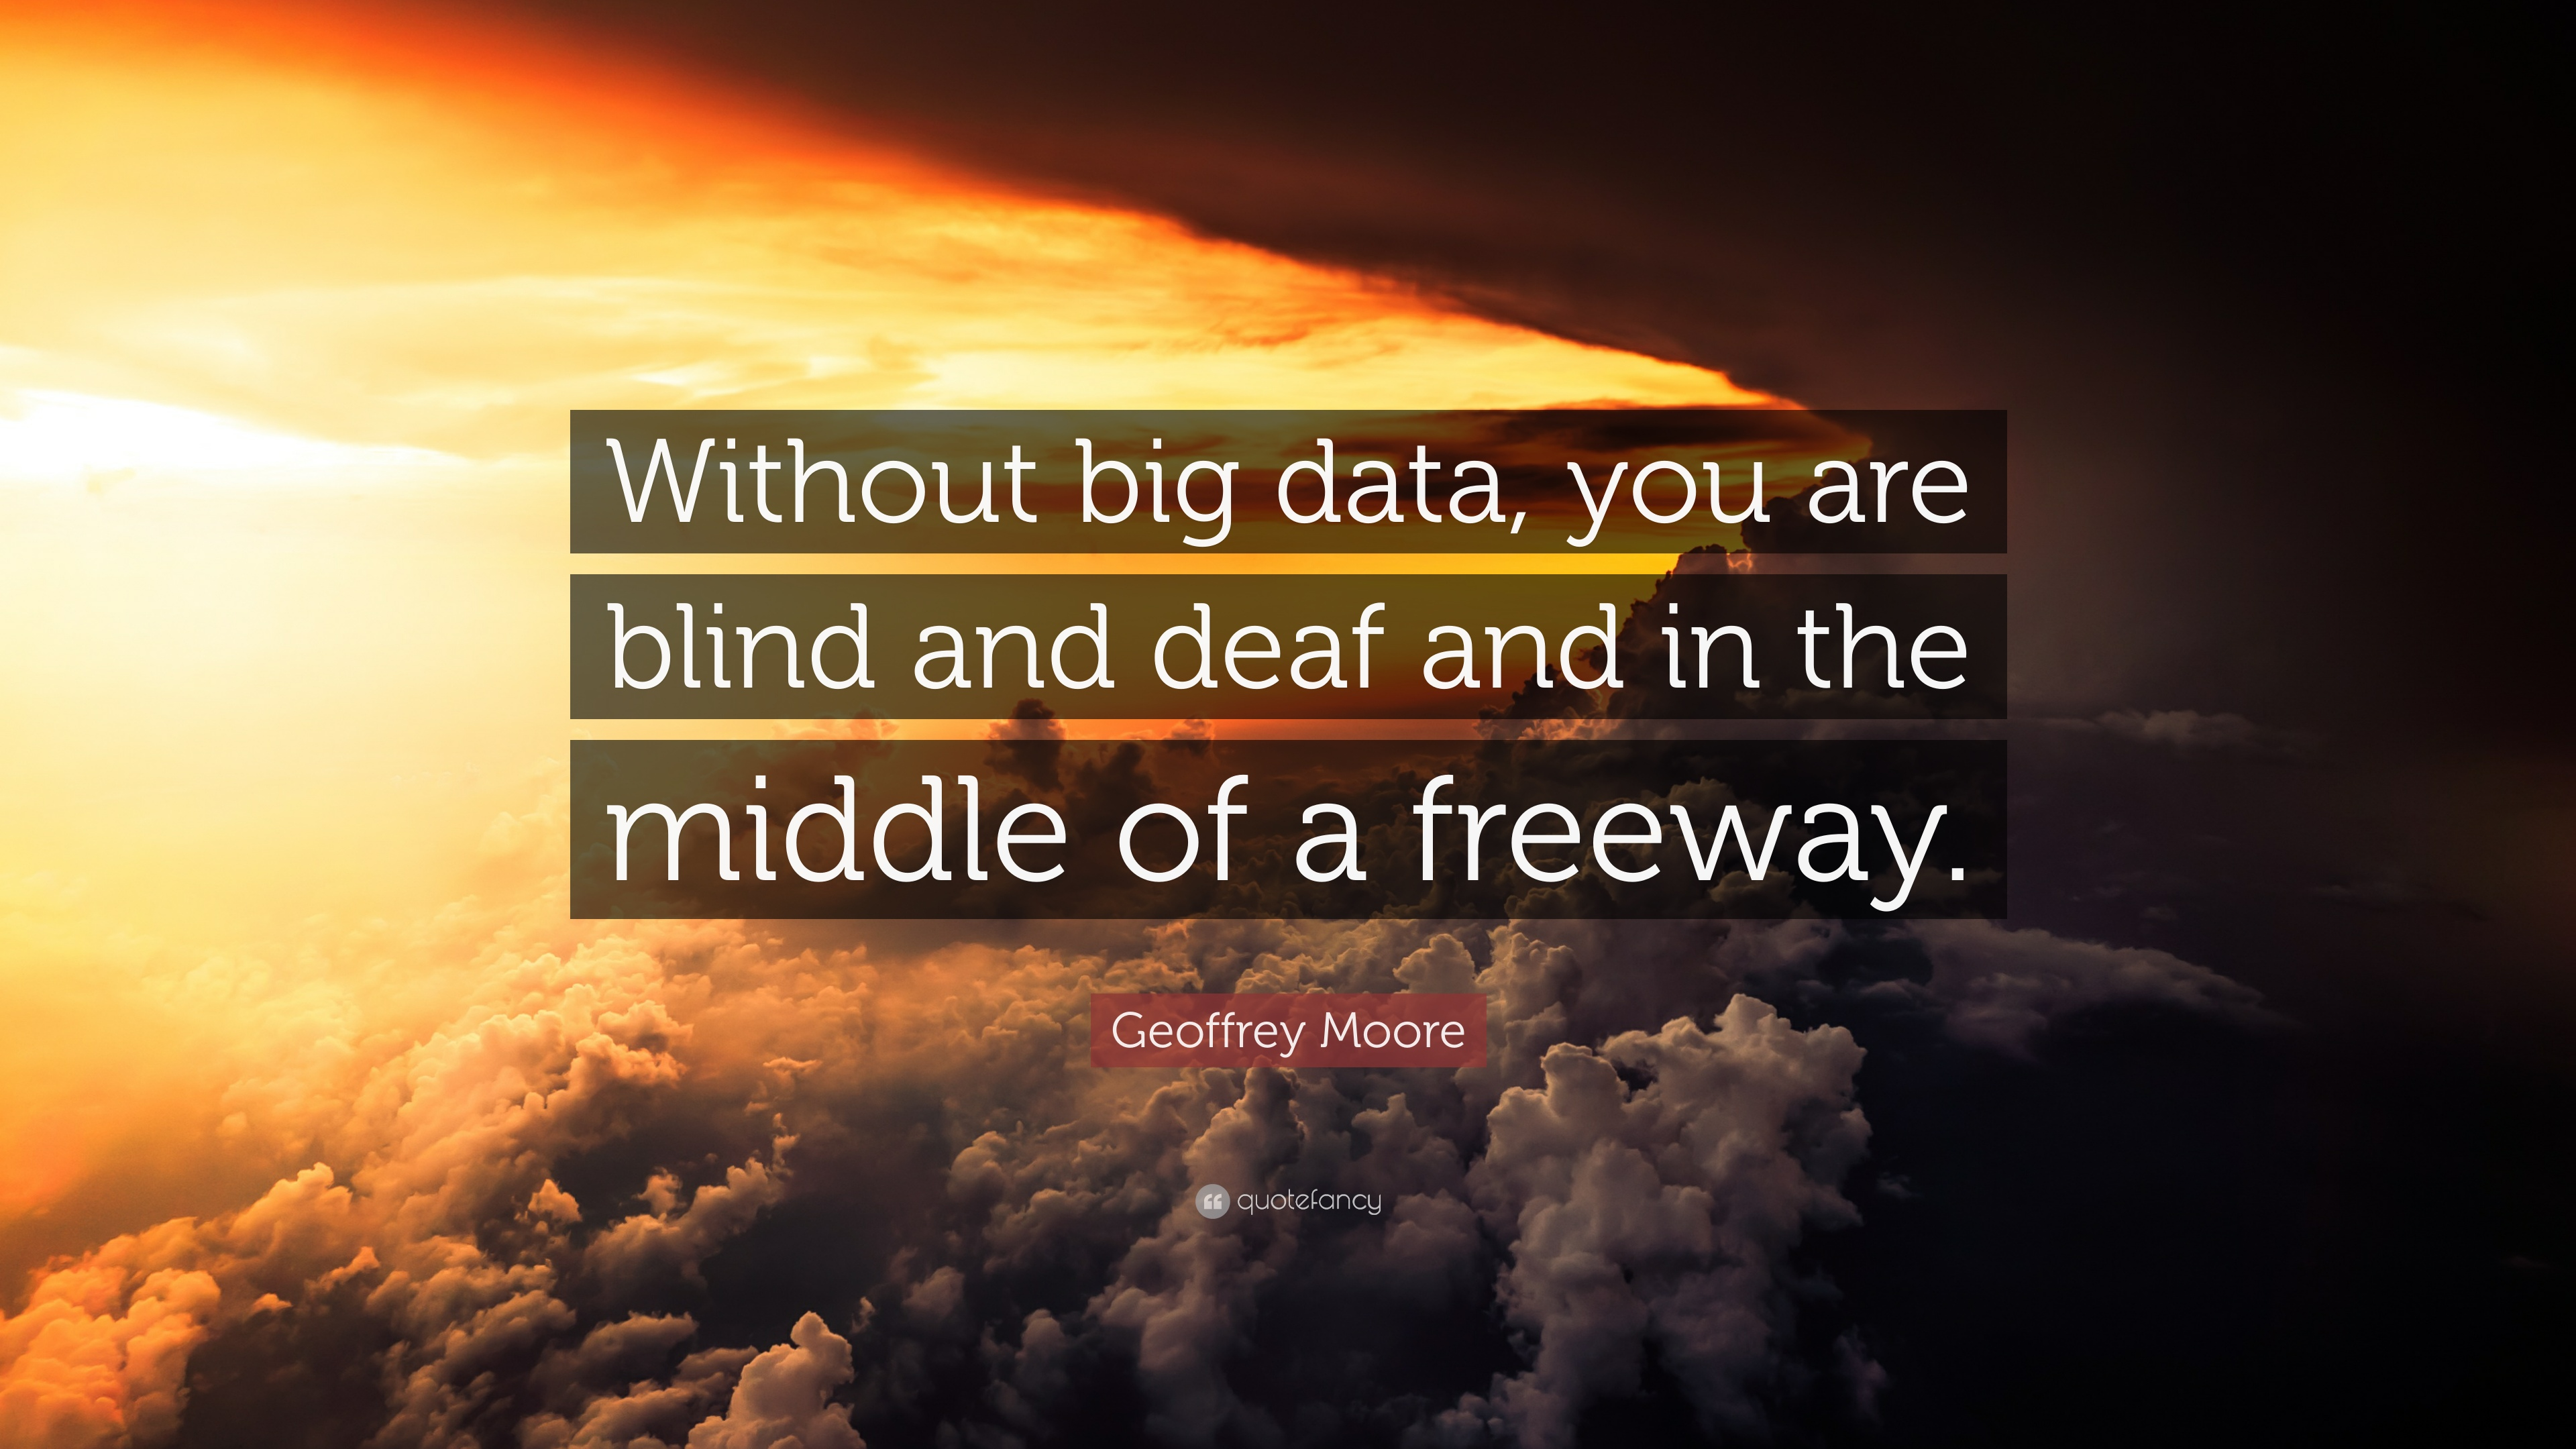 geoffrey moore quote   u201cwithout big data  you are blind and